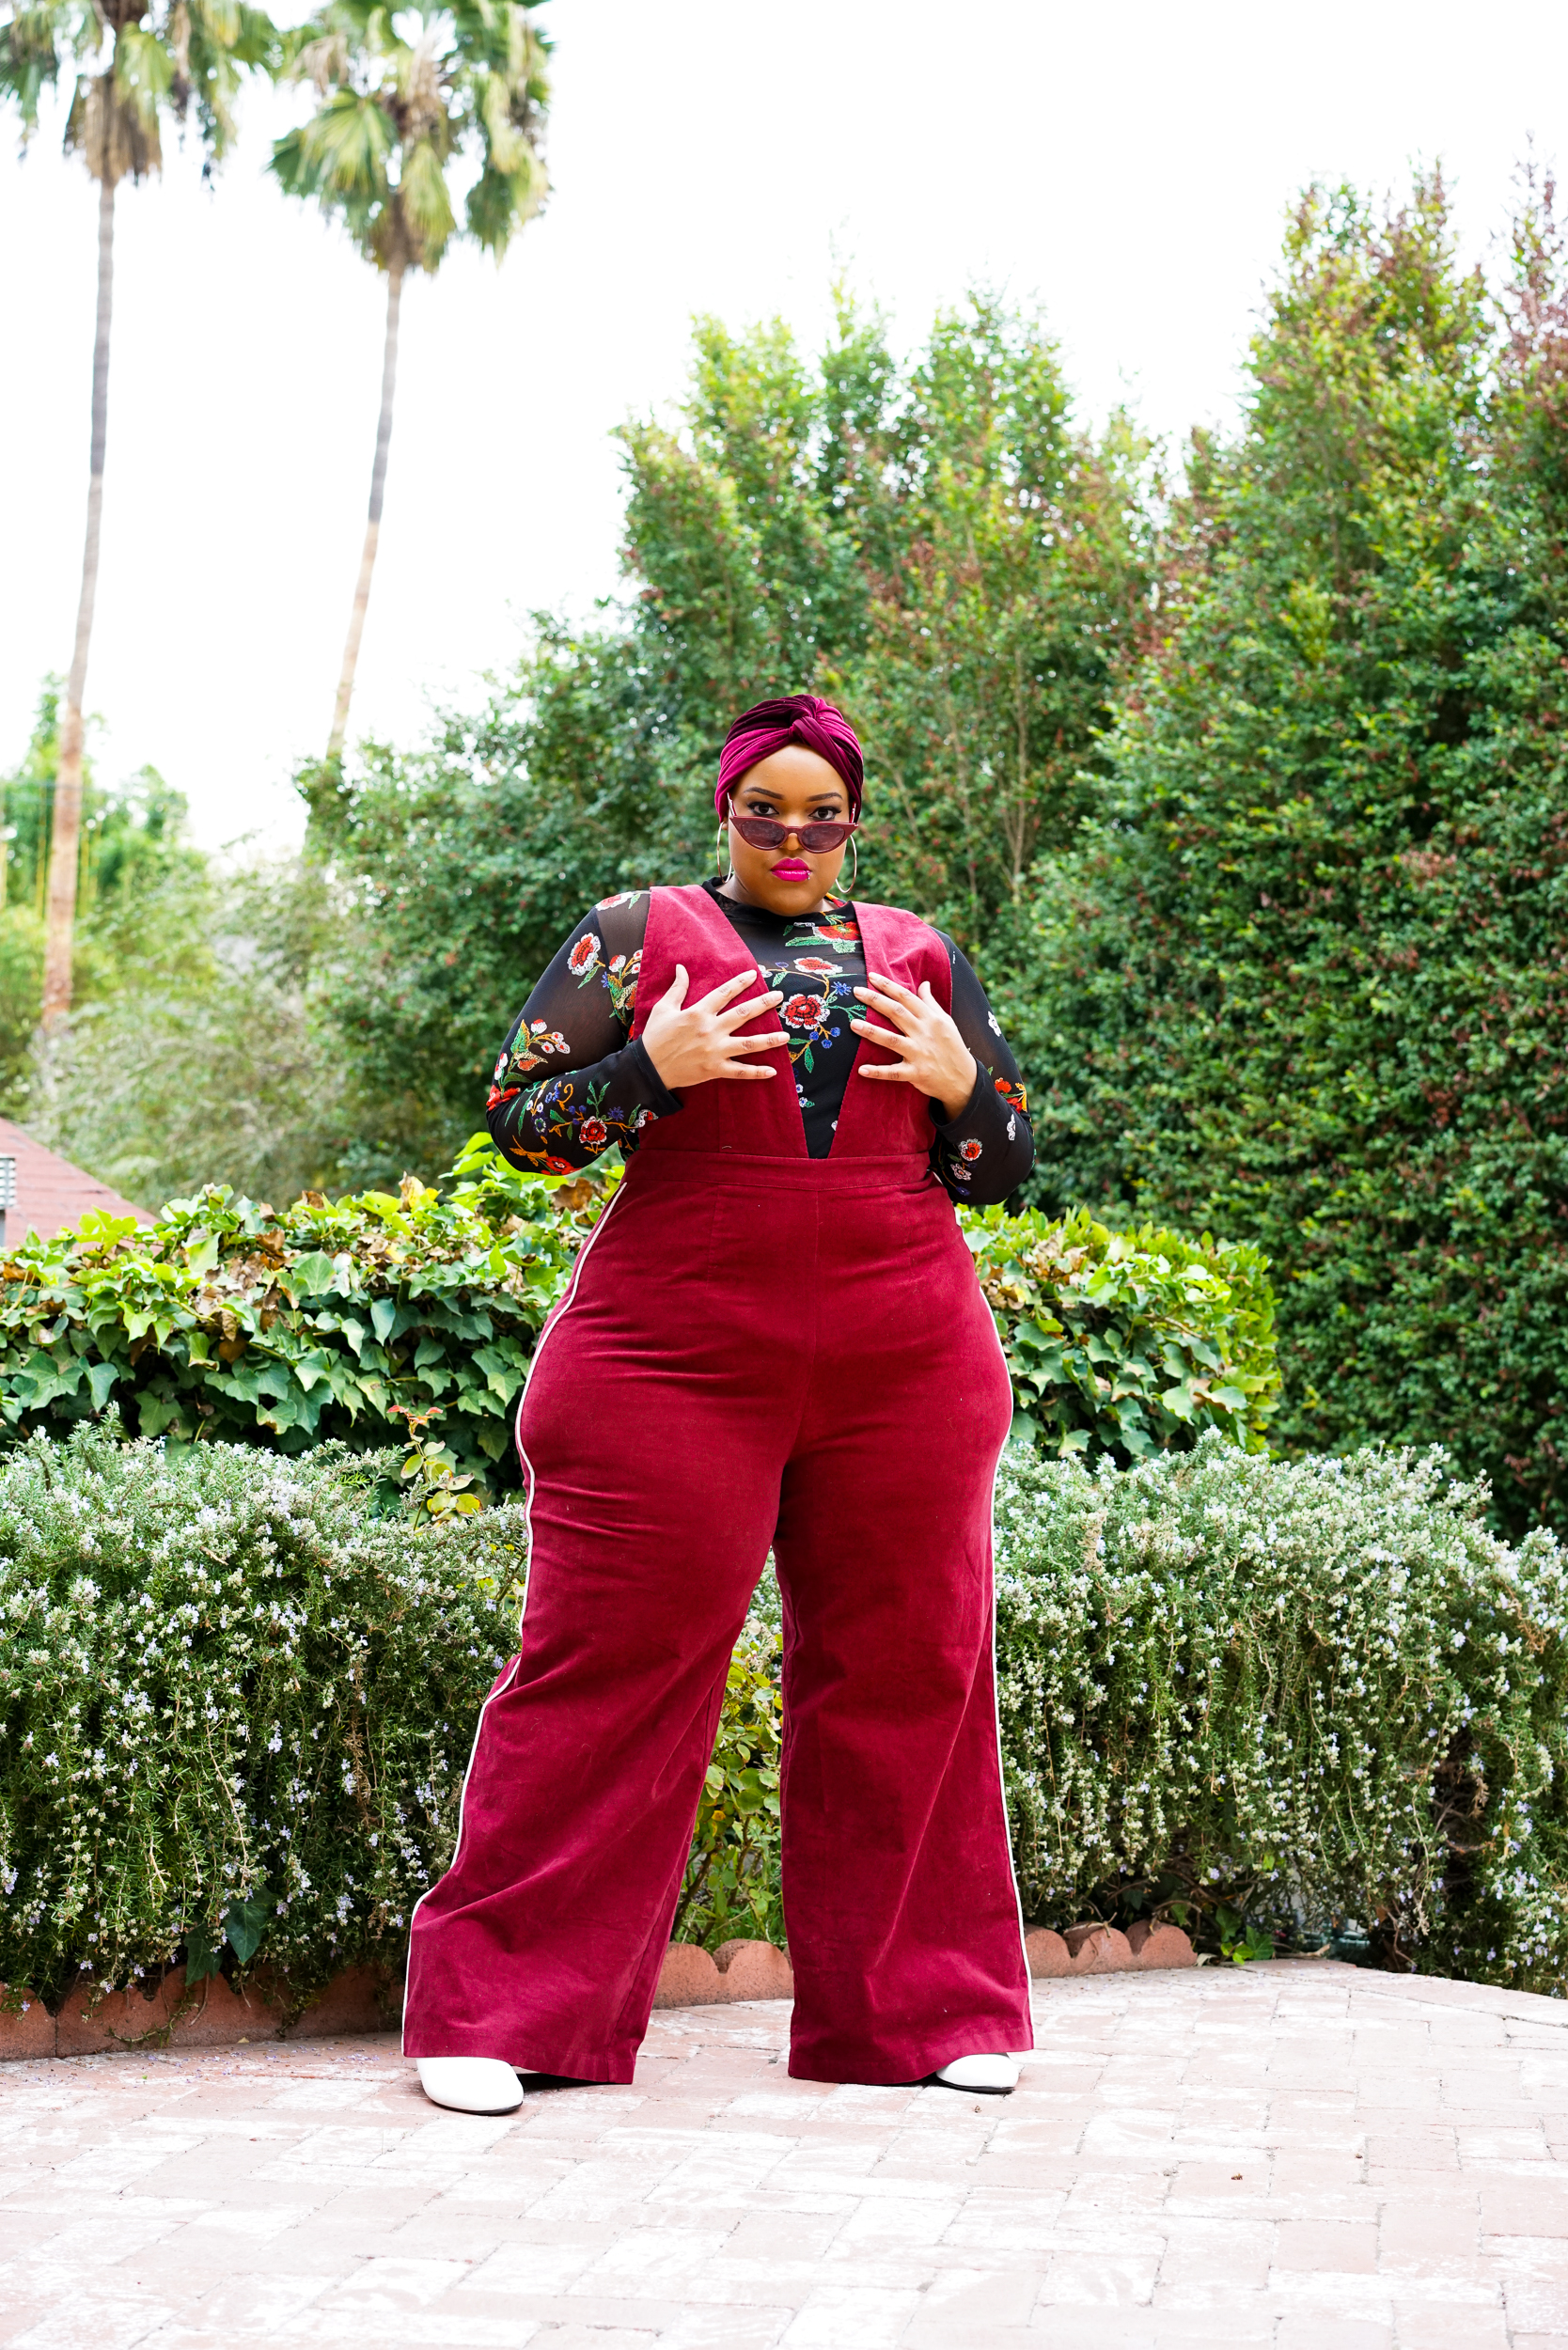 Leah-Vernon-Plus-Size-Body-Positive-Muslim-Girl-Model-Detroit-London-Blogger-Instagram-3.jpg